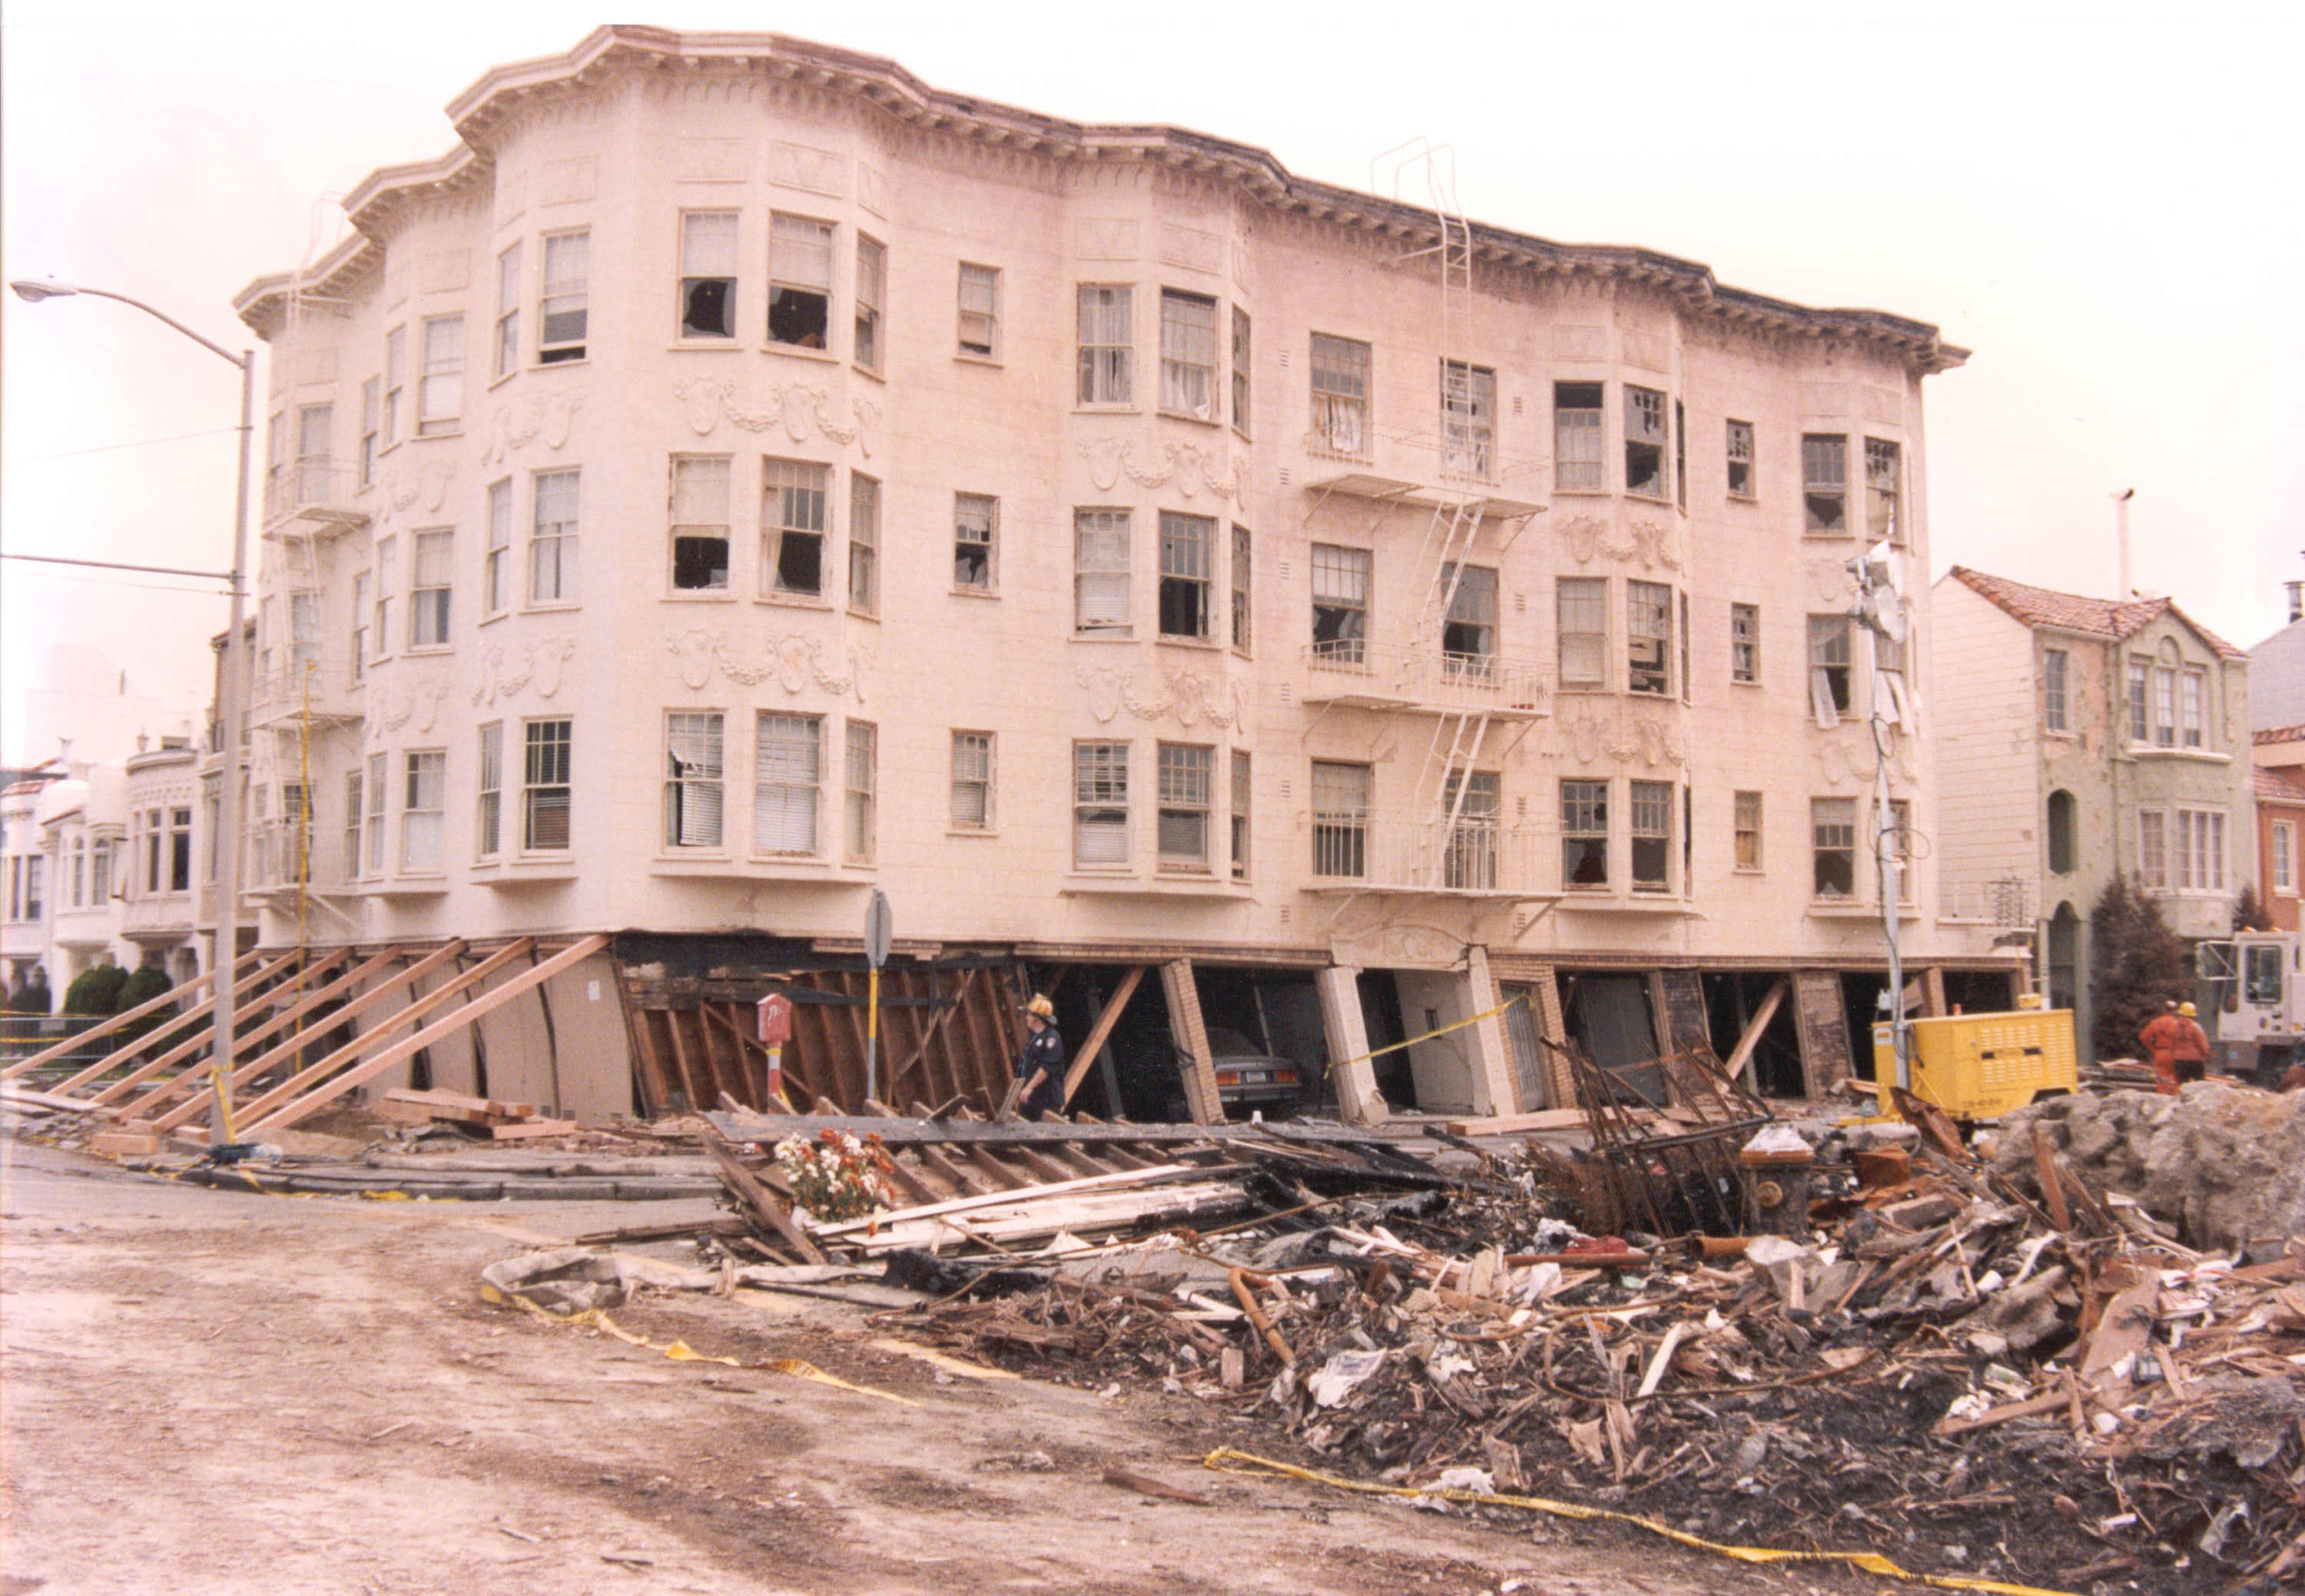 the loma prieta earthquake The 1989 loma prieta earthquake ended decades of tranquillity in the san francisco bay region it was a wakeup call to prepare for the potentially even more devastating shocks that are inevitable in the future.